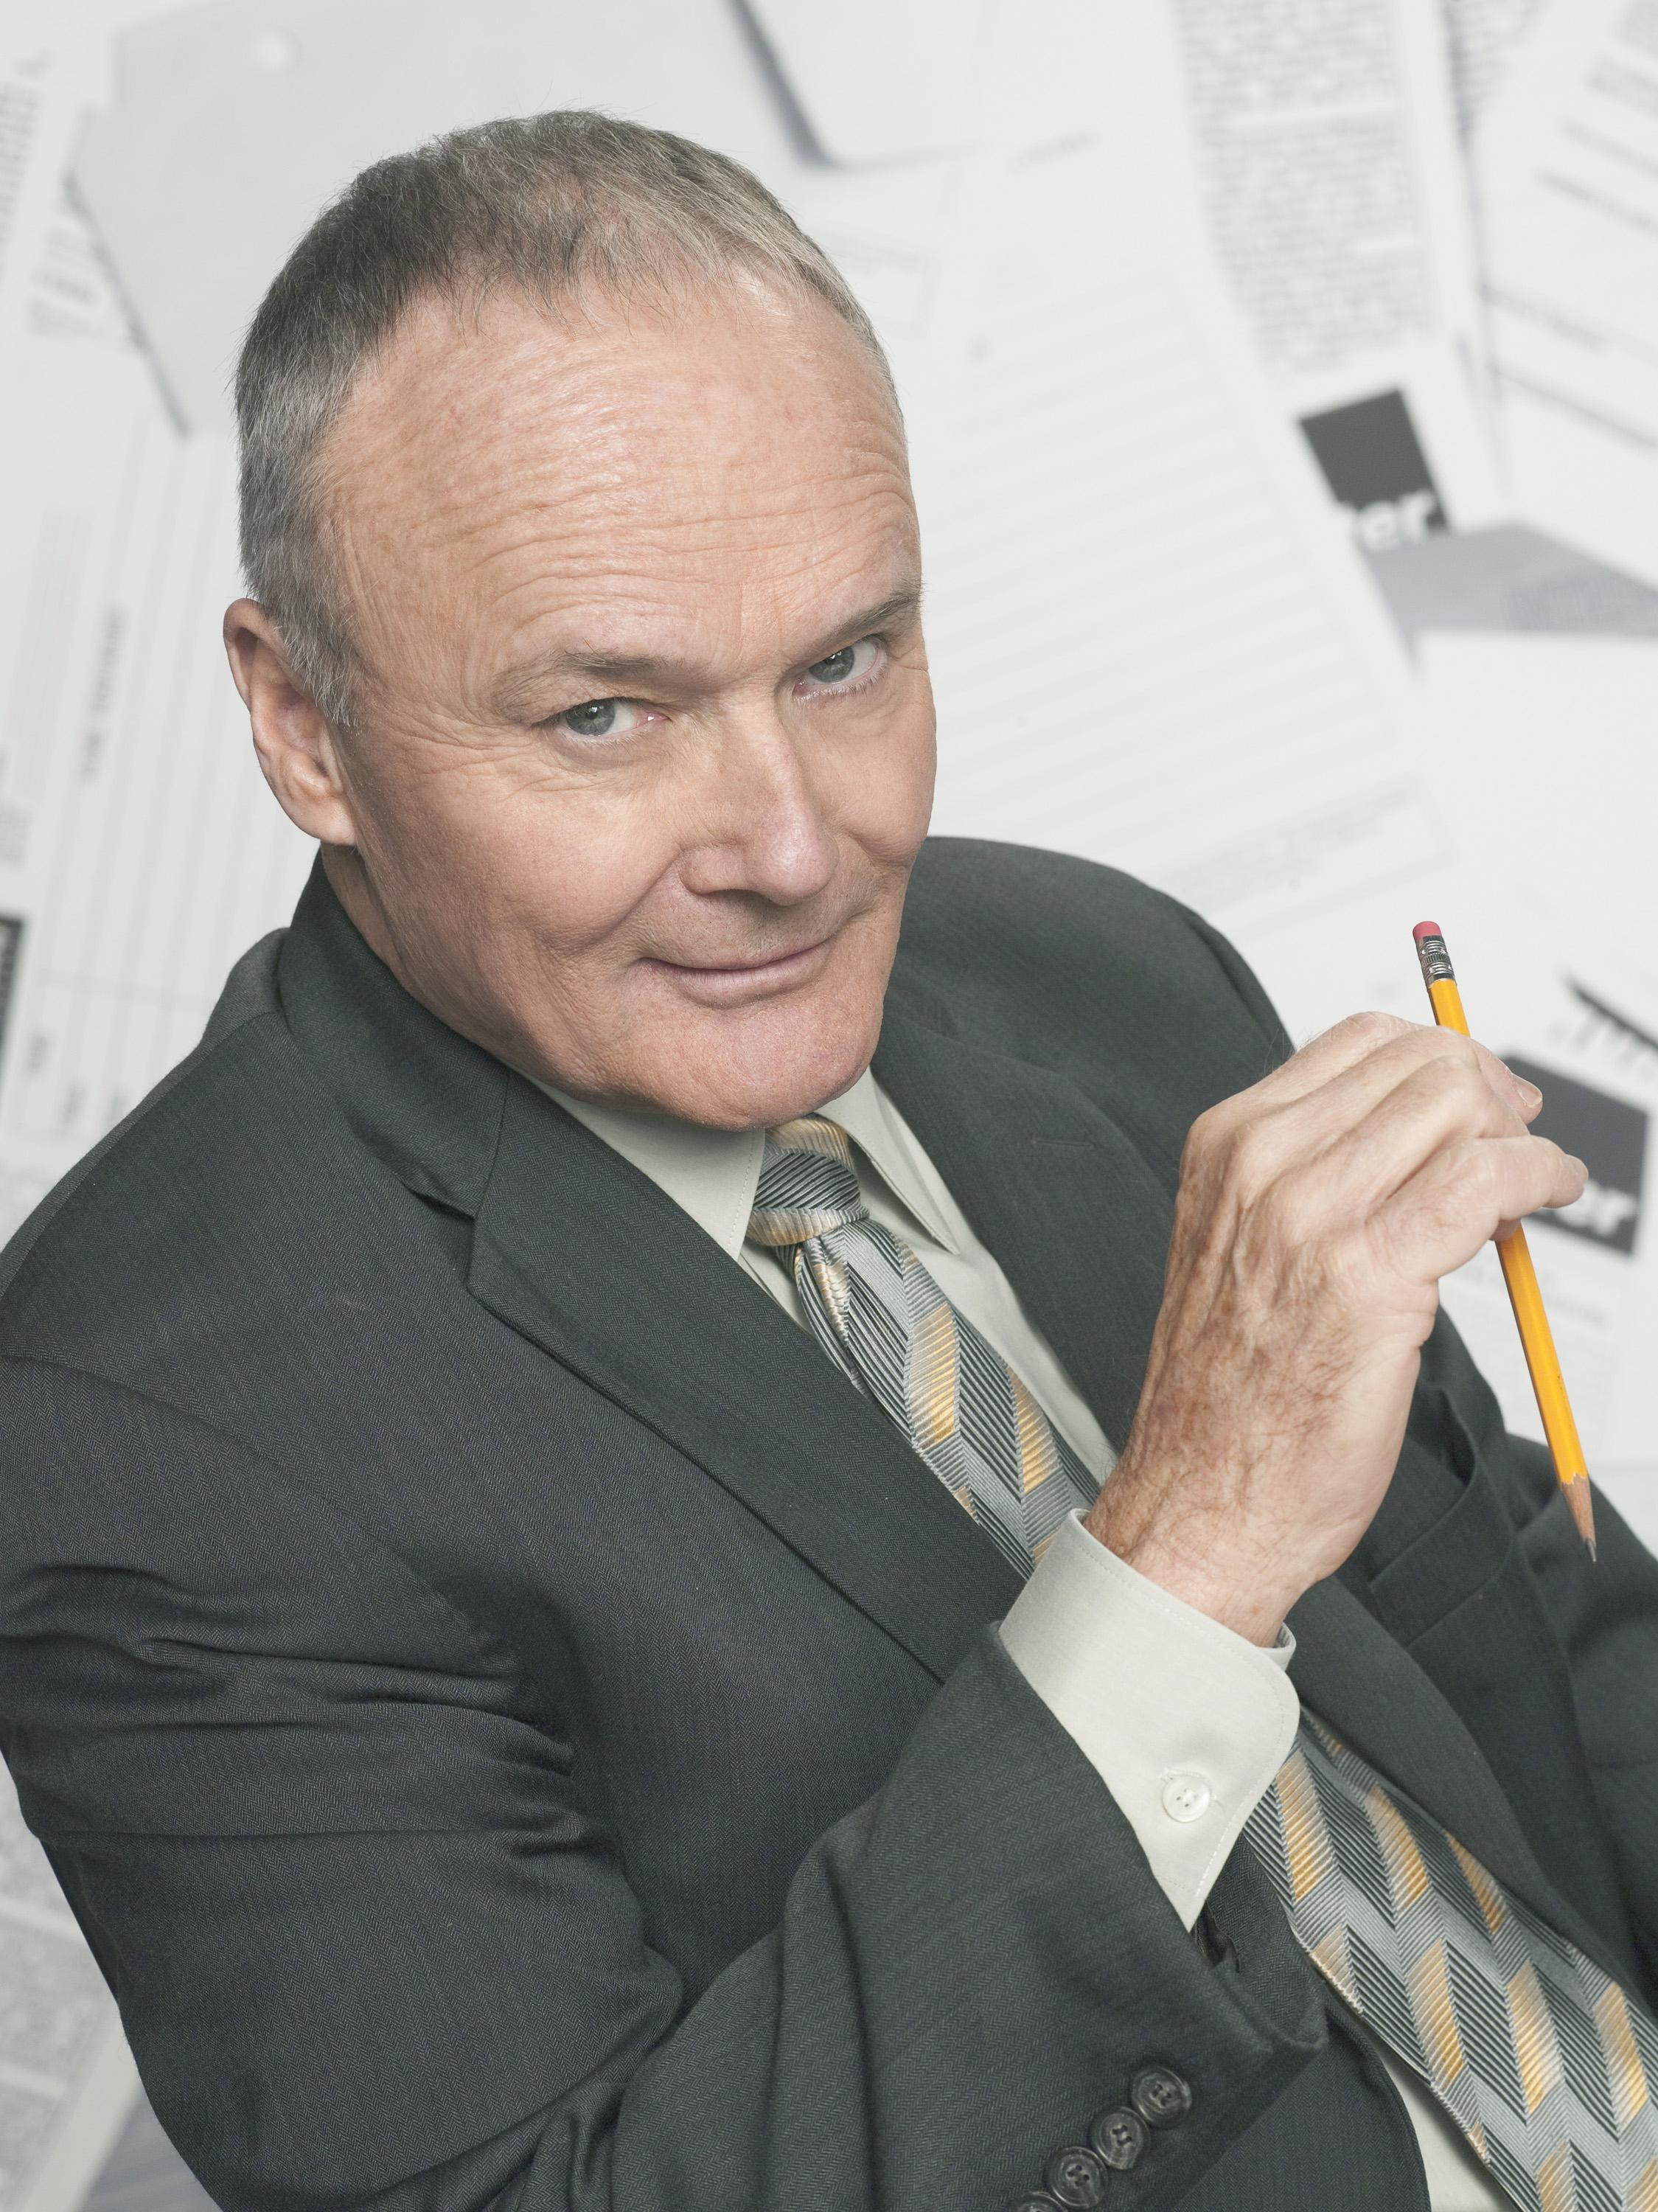 Creed Bratton (from The Office): An Evening of Music and Comedy